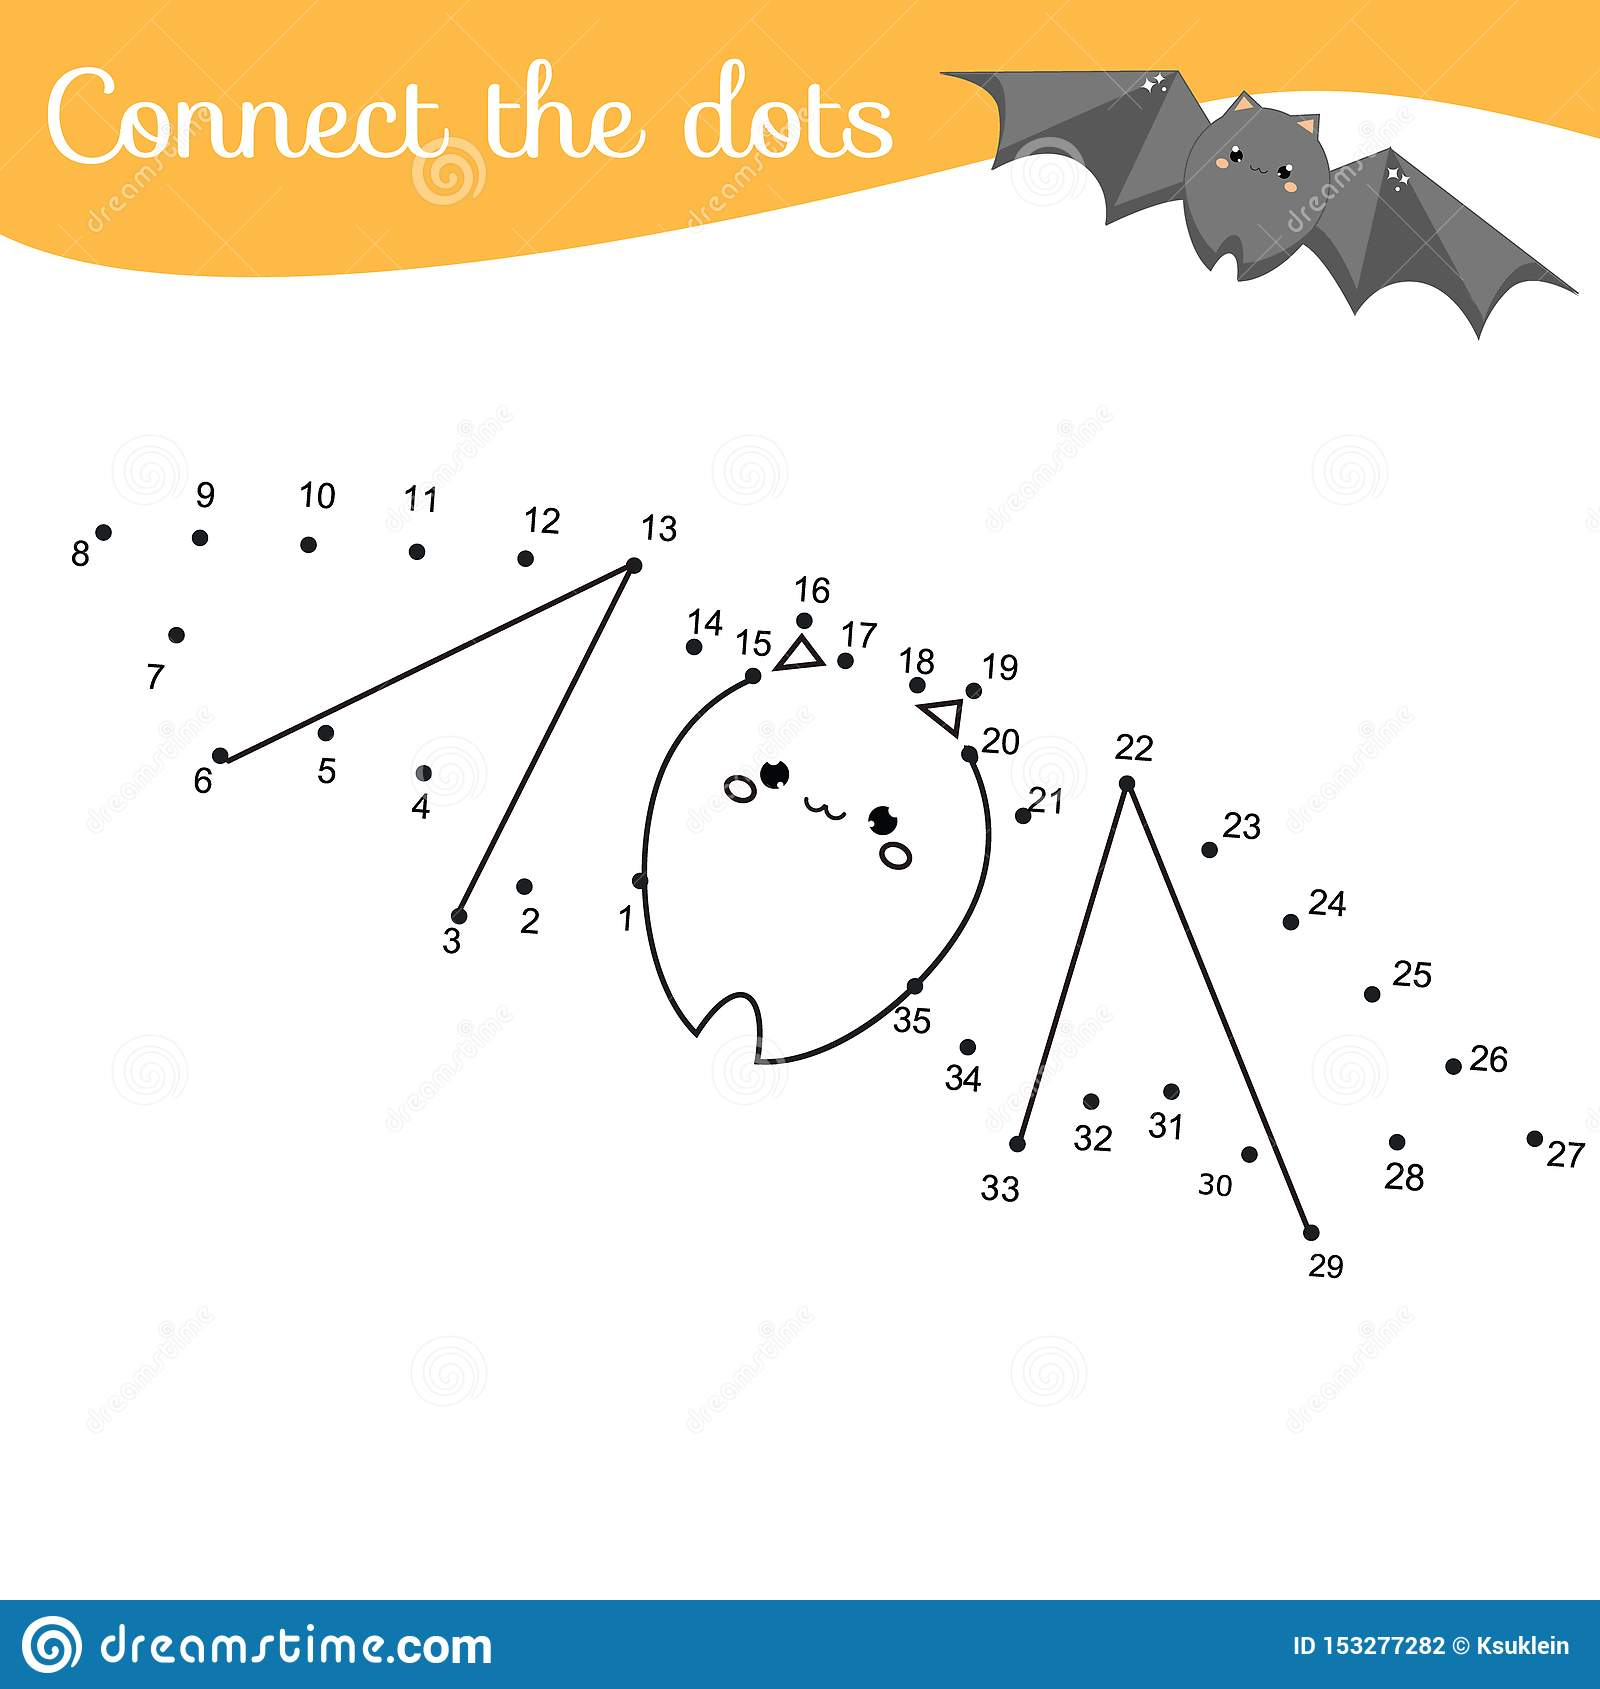 Crtoon Bat Connect The Dots Dot To Dot By Numbers